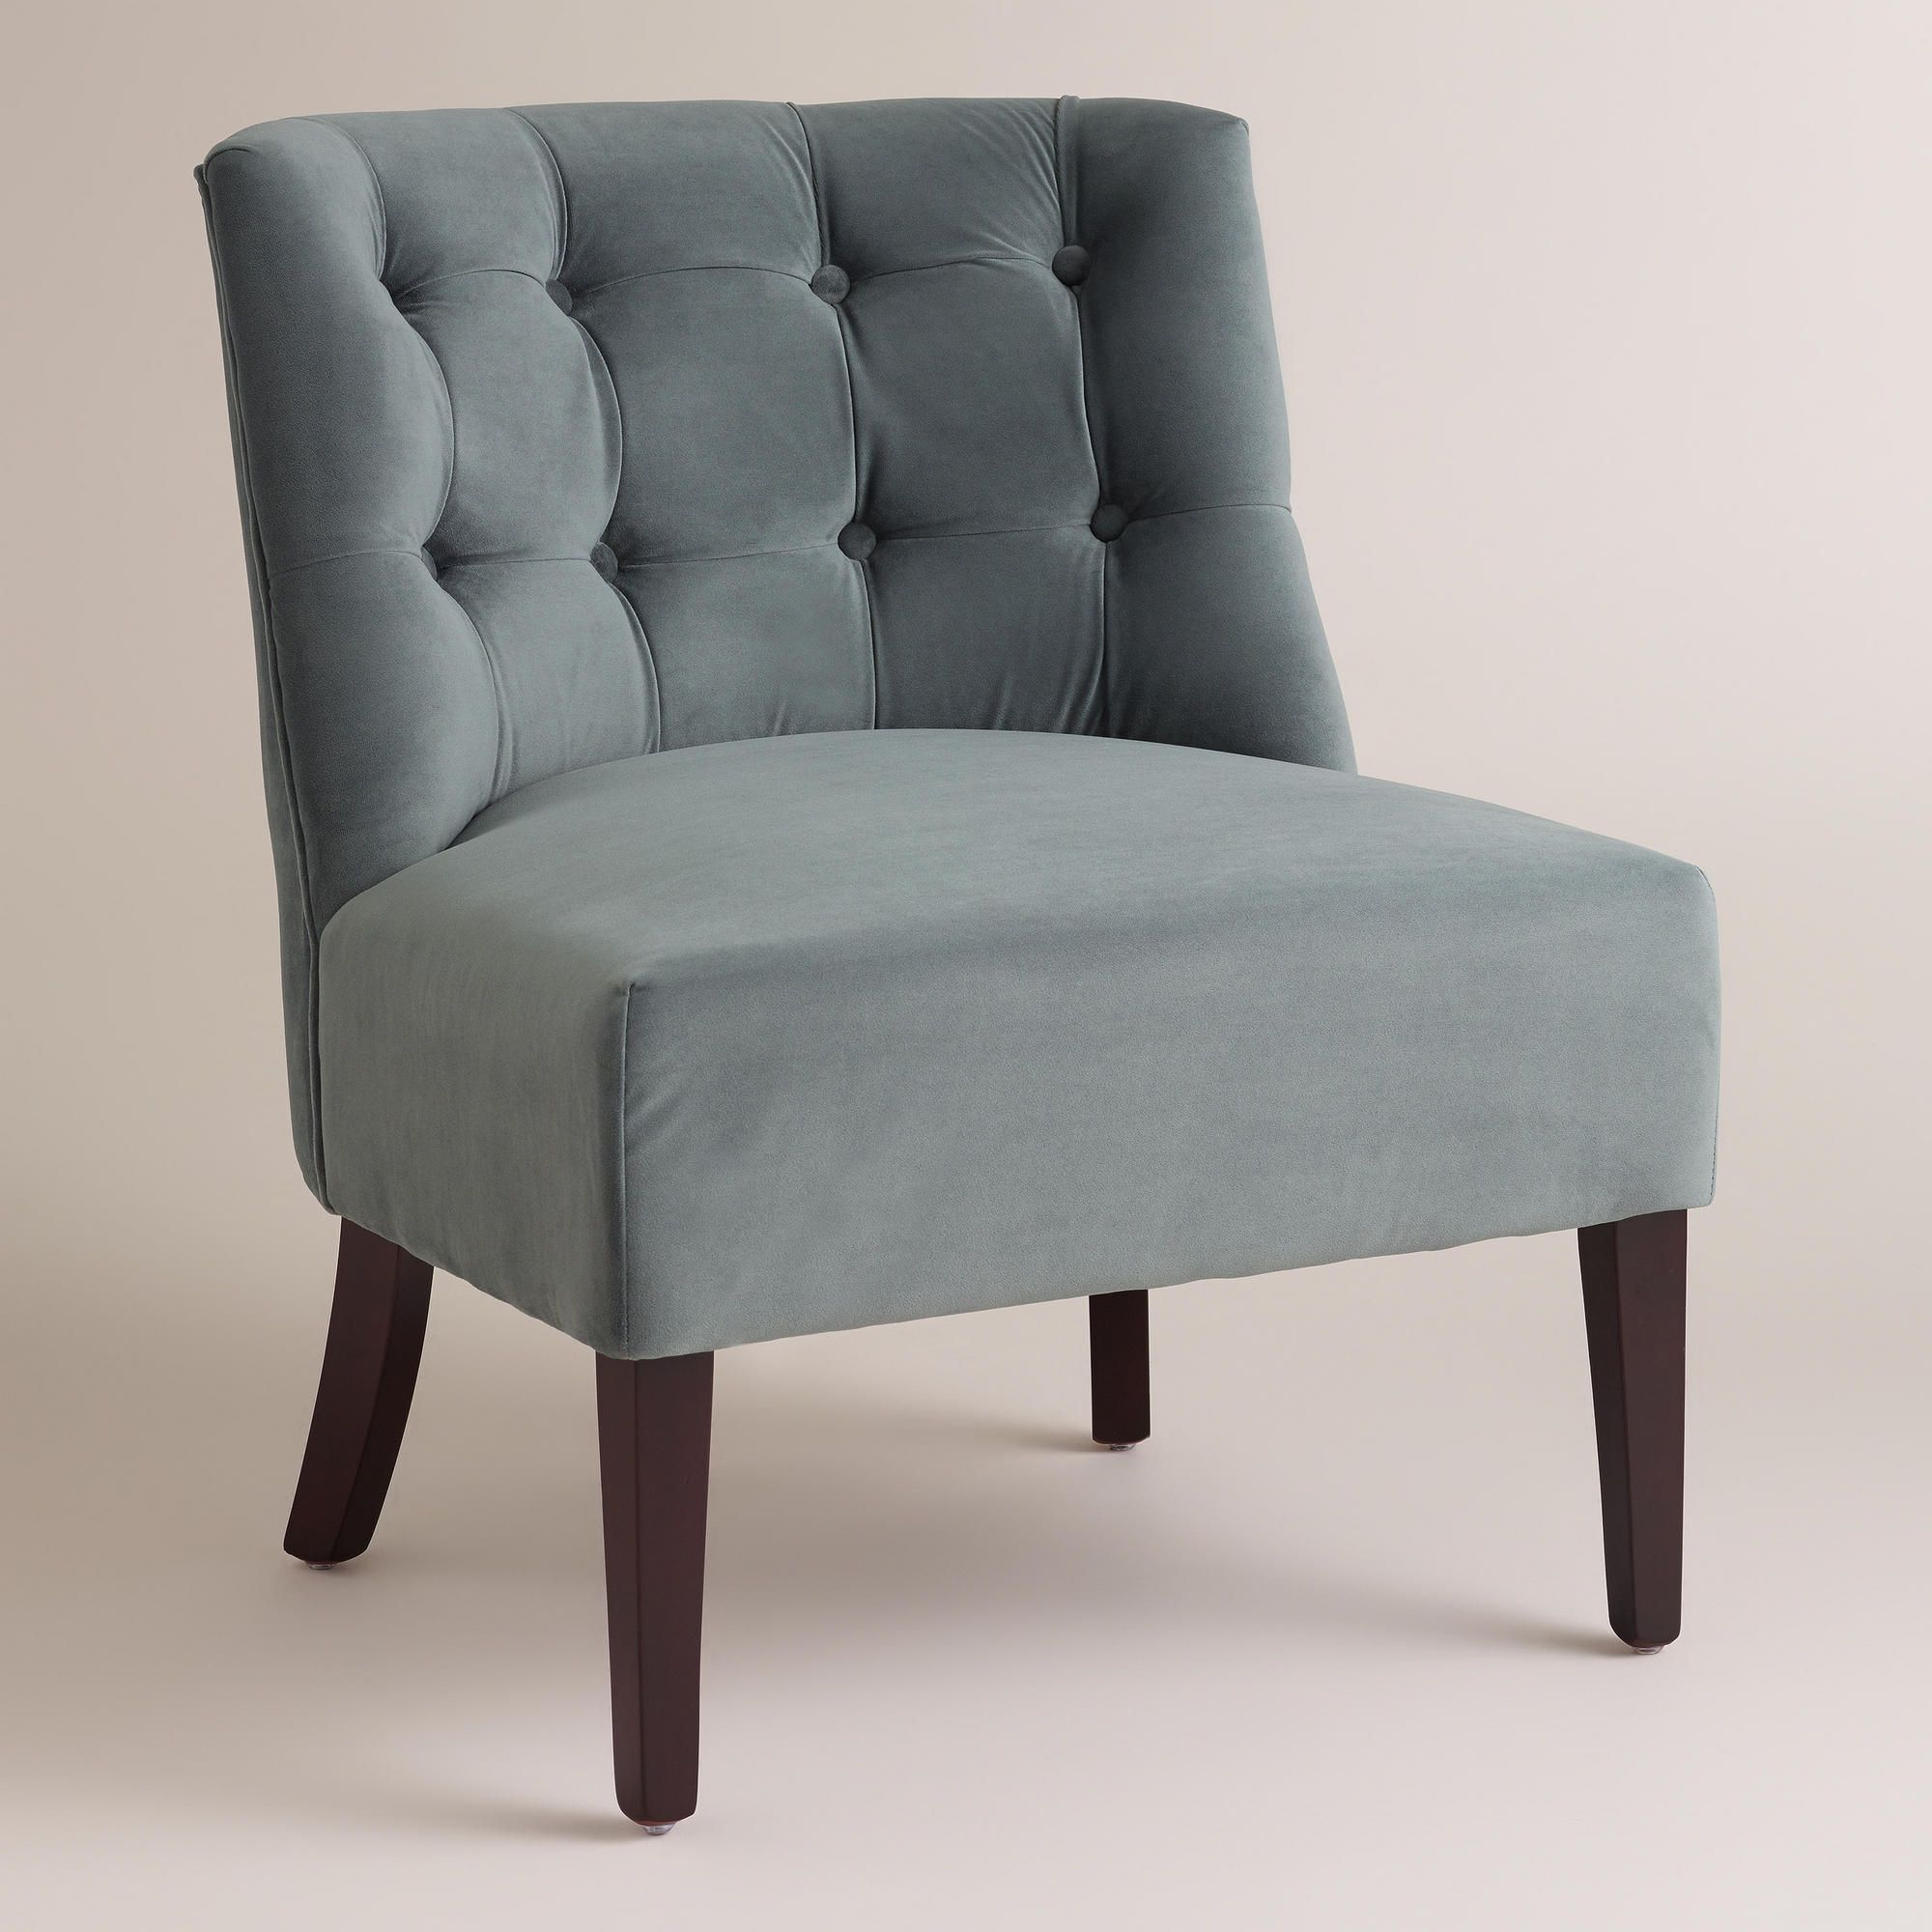 Chair in the corner of the family room with a floor lamp